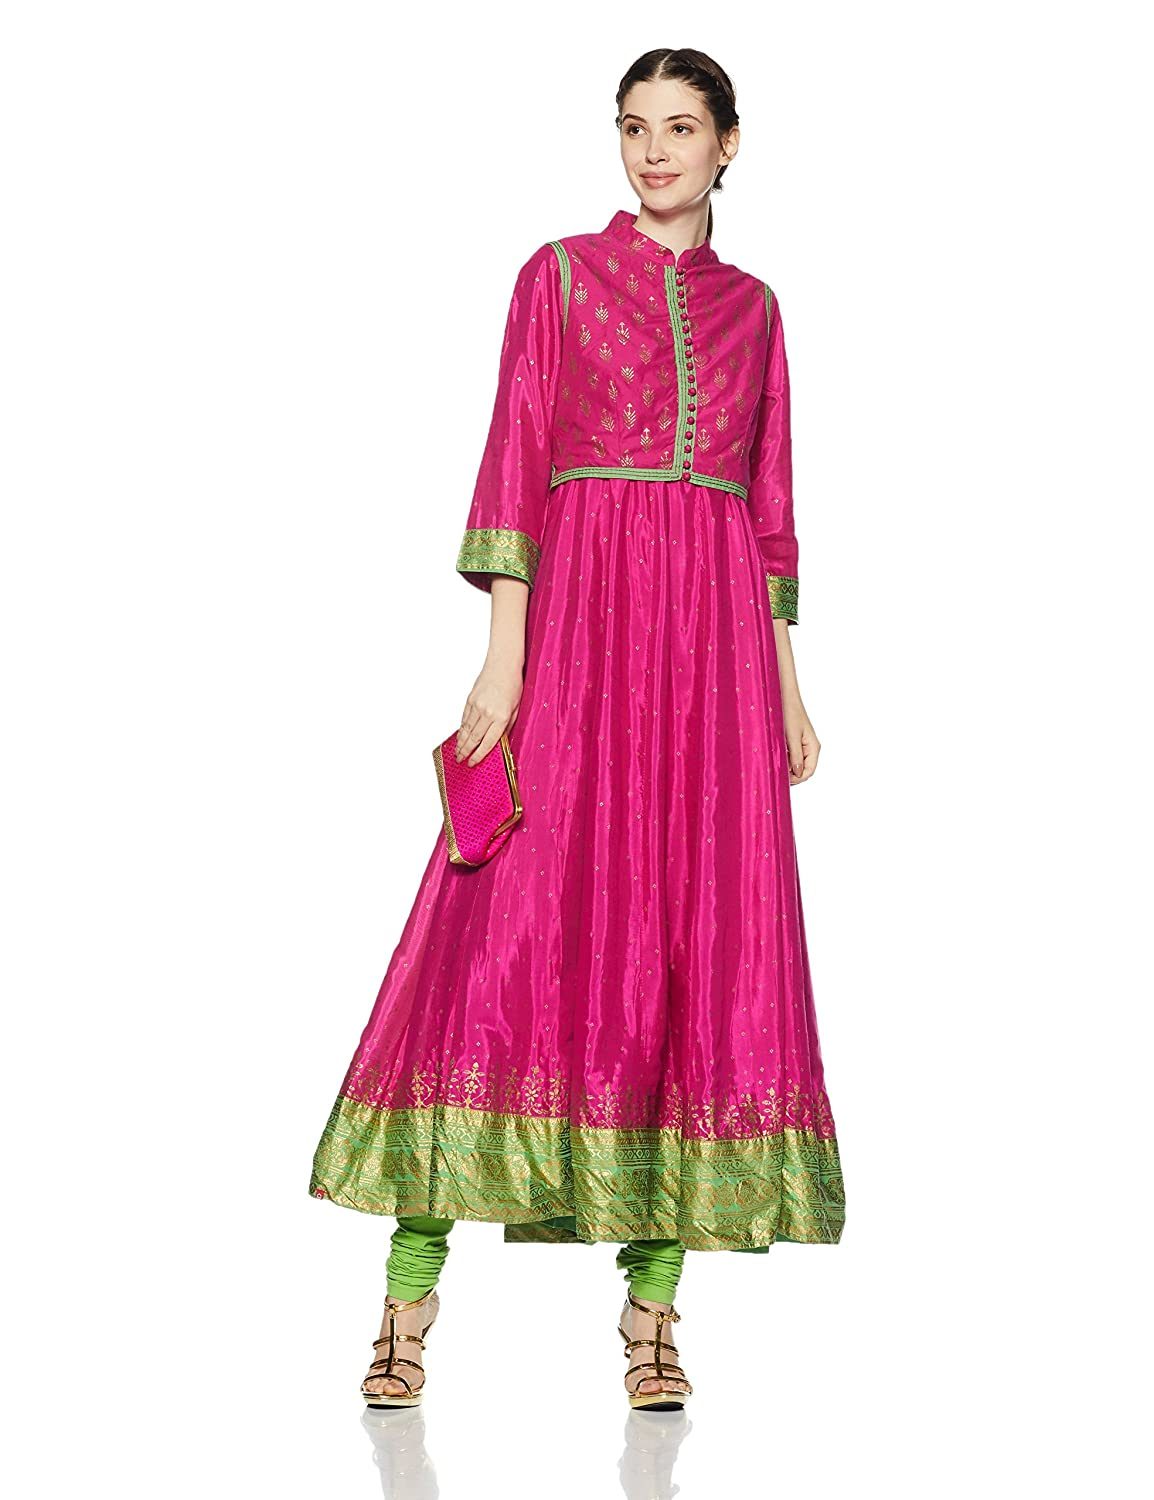 Best Anarkali Kurta For Women's – BIBA